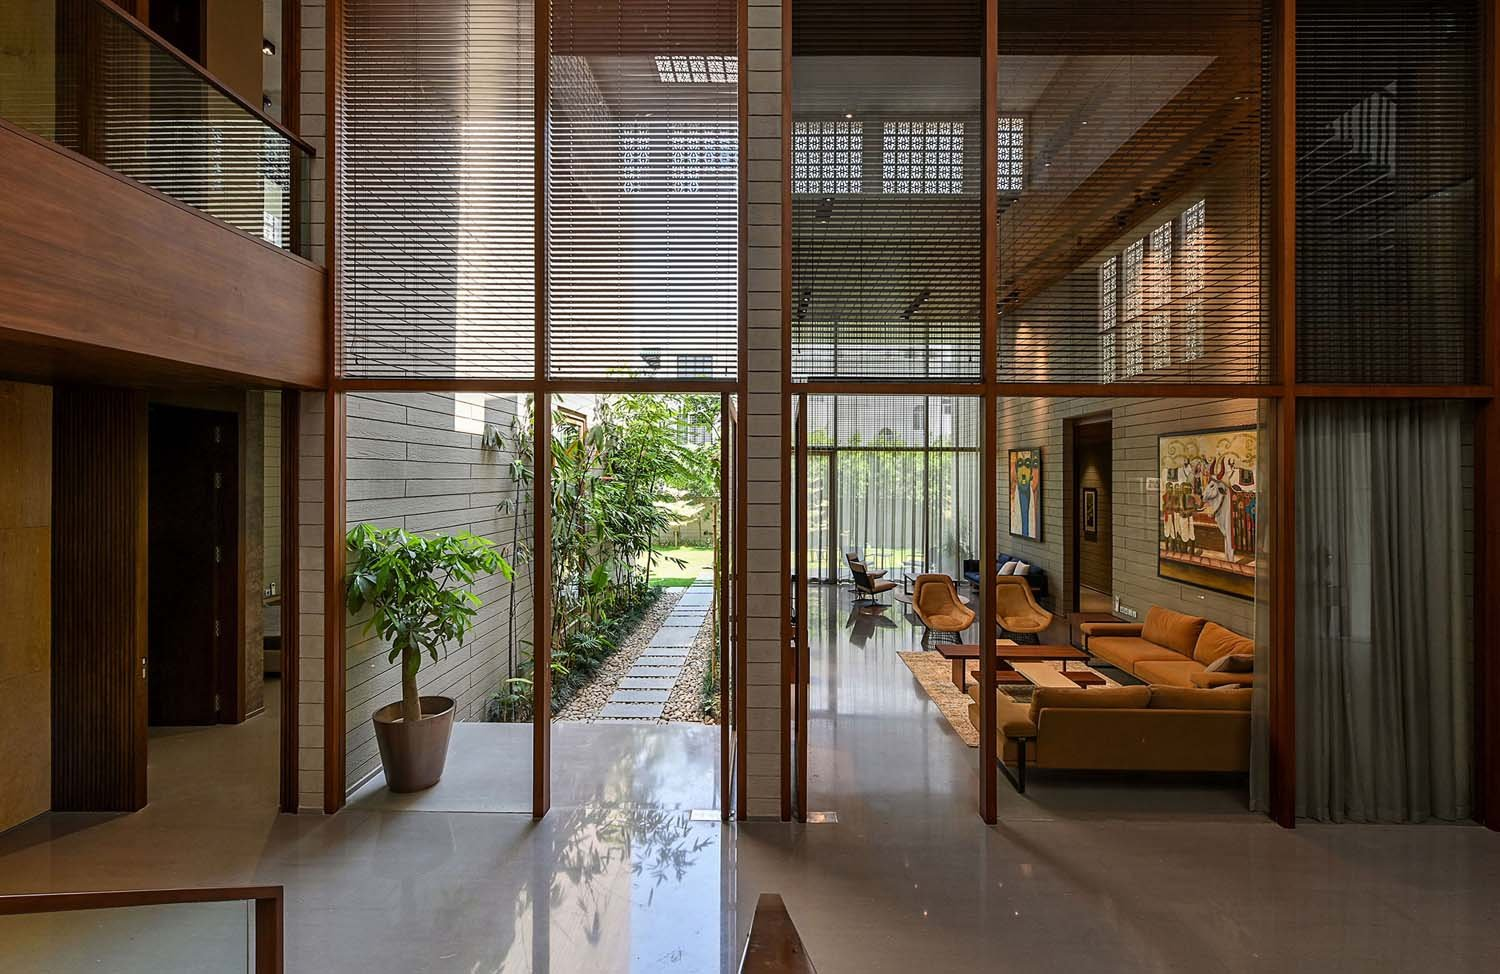 VIEW OF THE LIVING ROOM FROM THE COURTYARD DINESH MEHTA